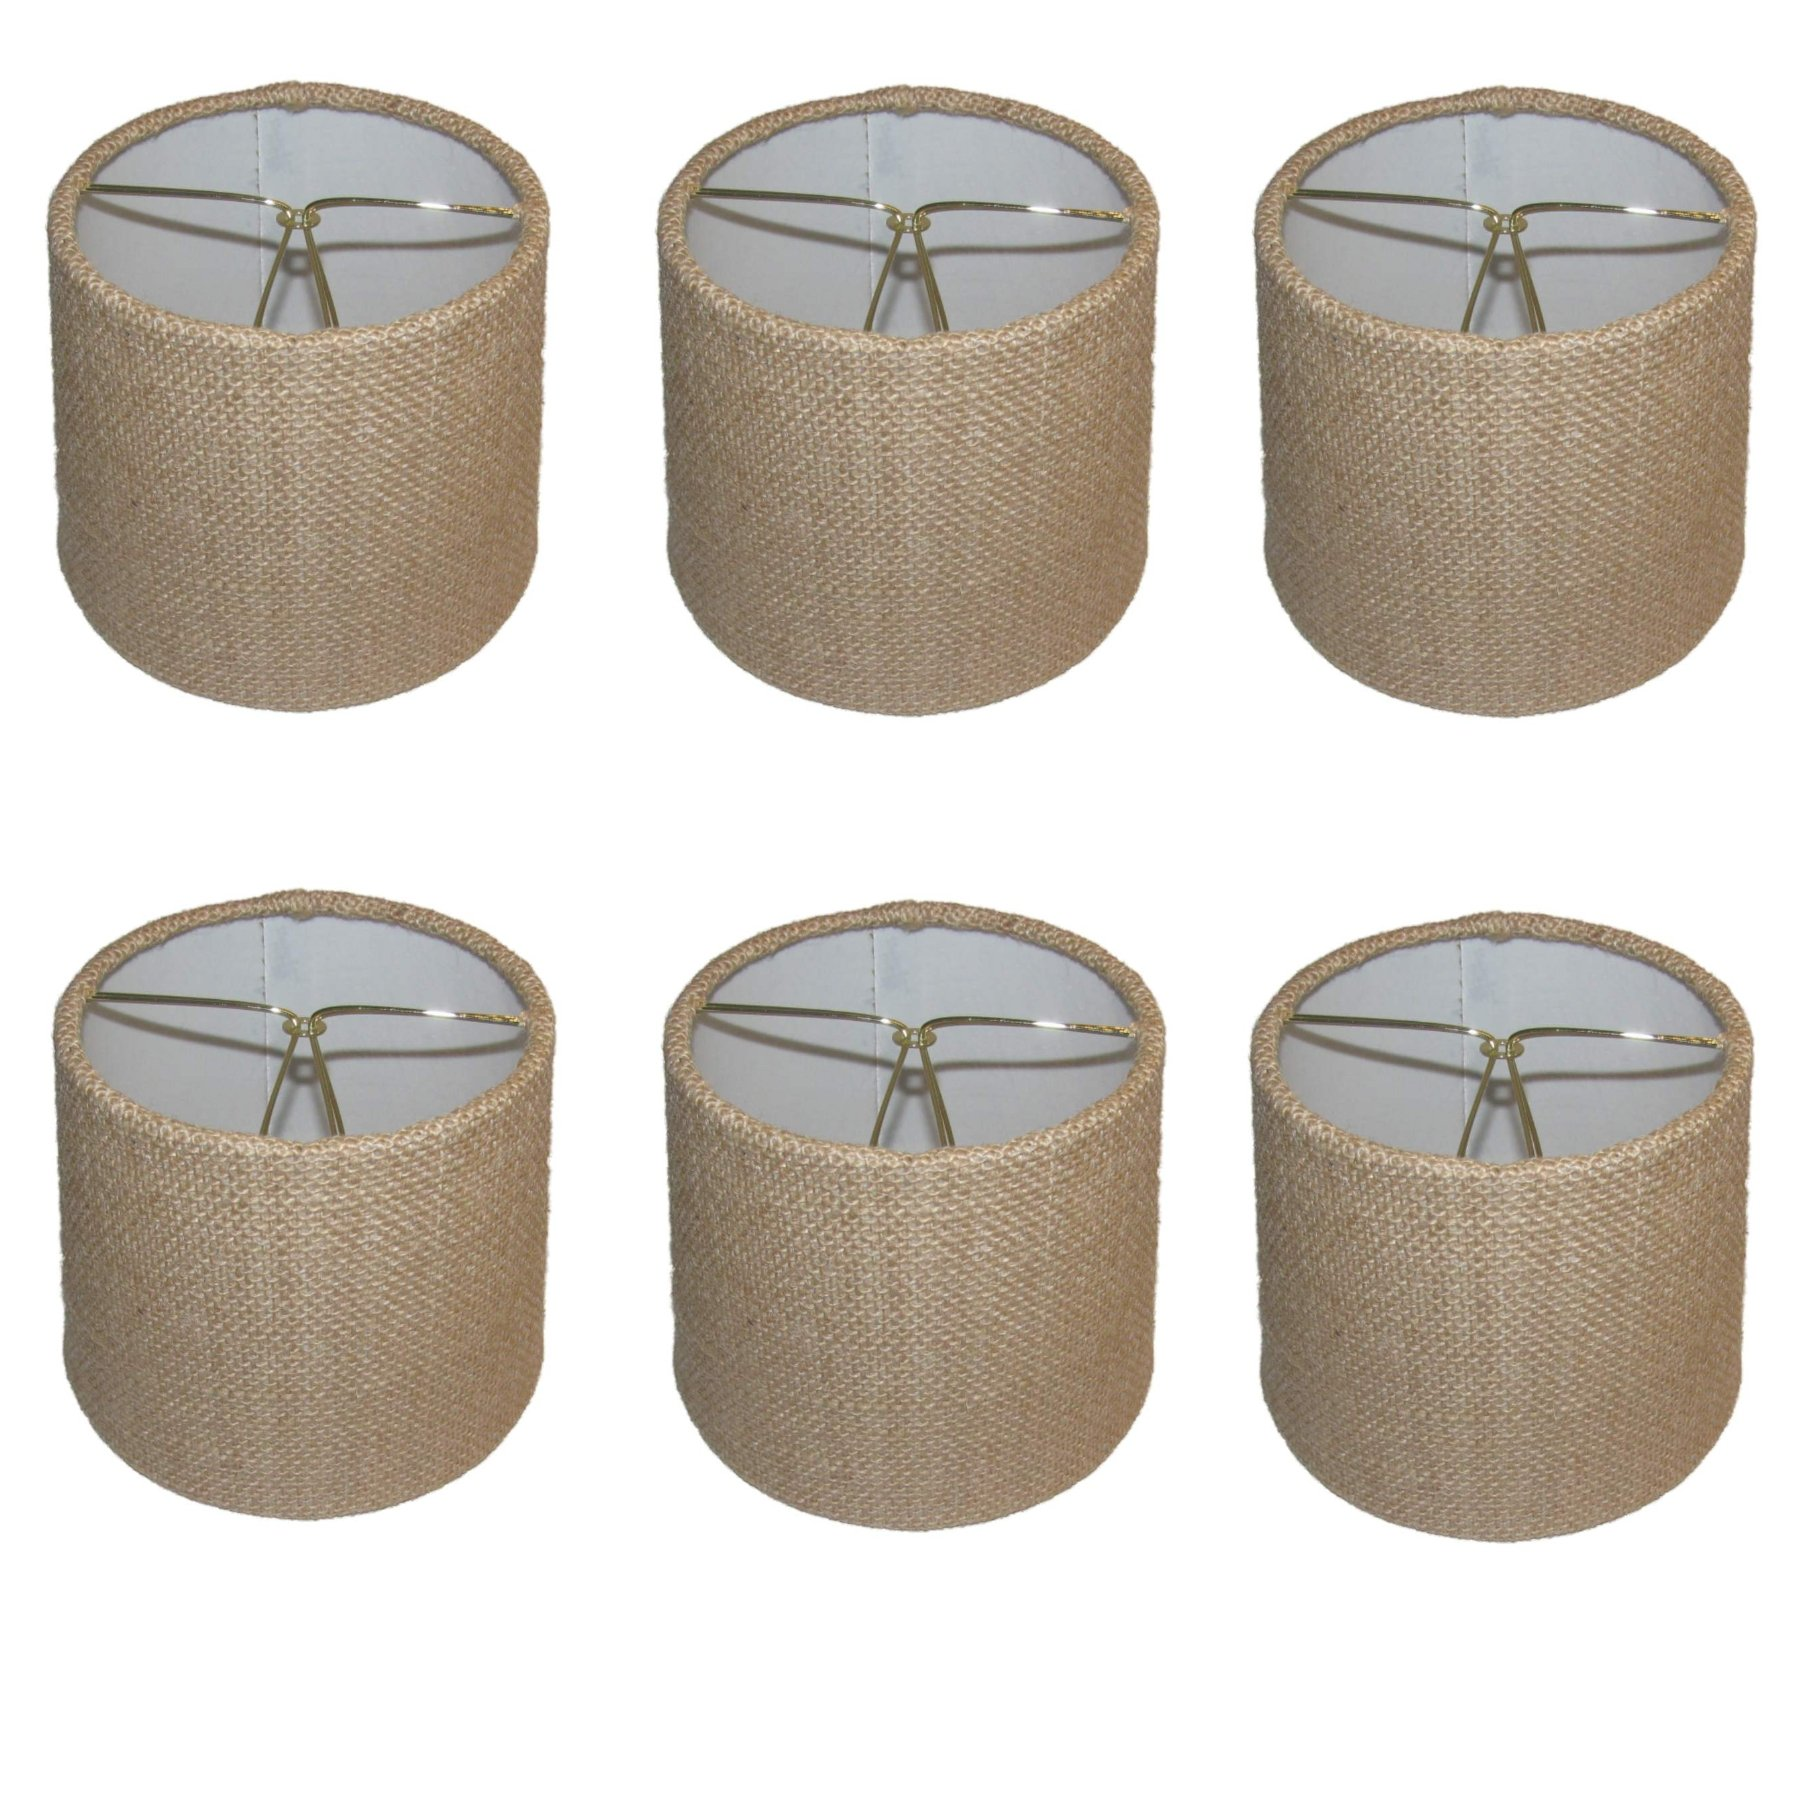 Upgradelights Set of Six - 6 Inch Barrel Drum Chandelier Shades in Natural Burlap Fabric 5x6x5 by Upgradelights (Image #1)